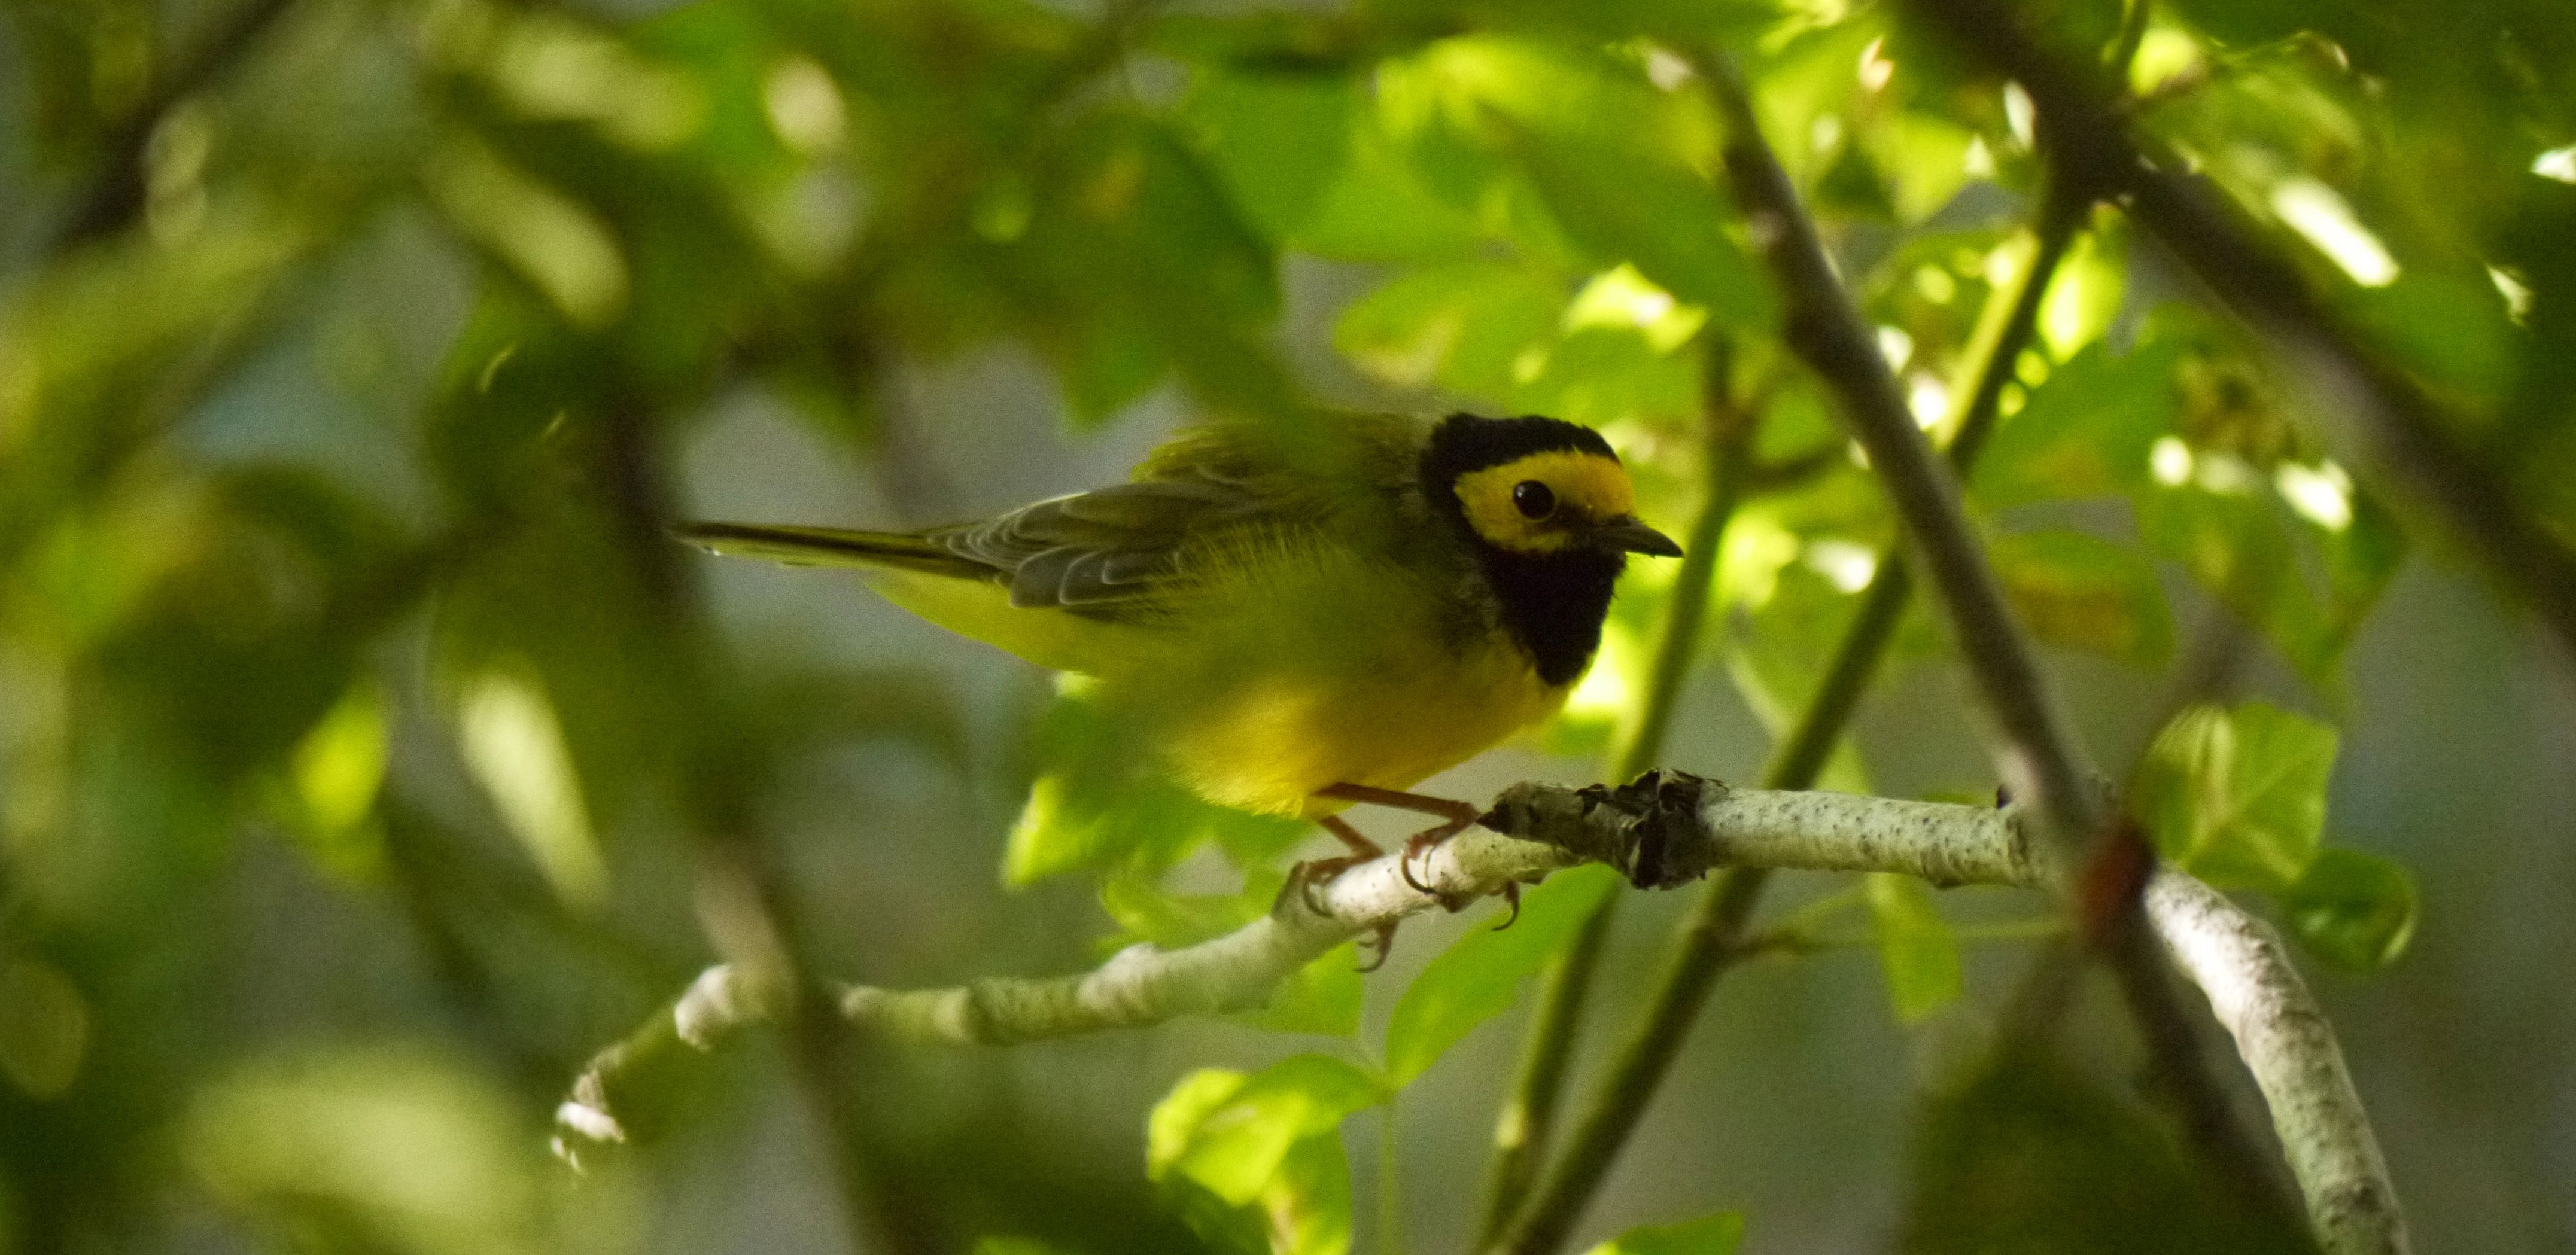 A small green and yellow bird perches on a tree branch partly obscured by thick green leaves.